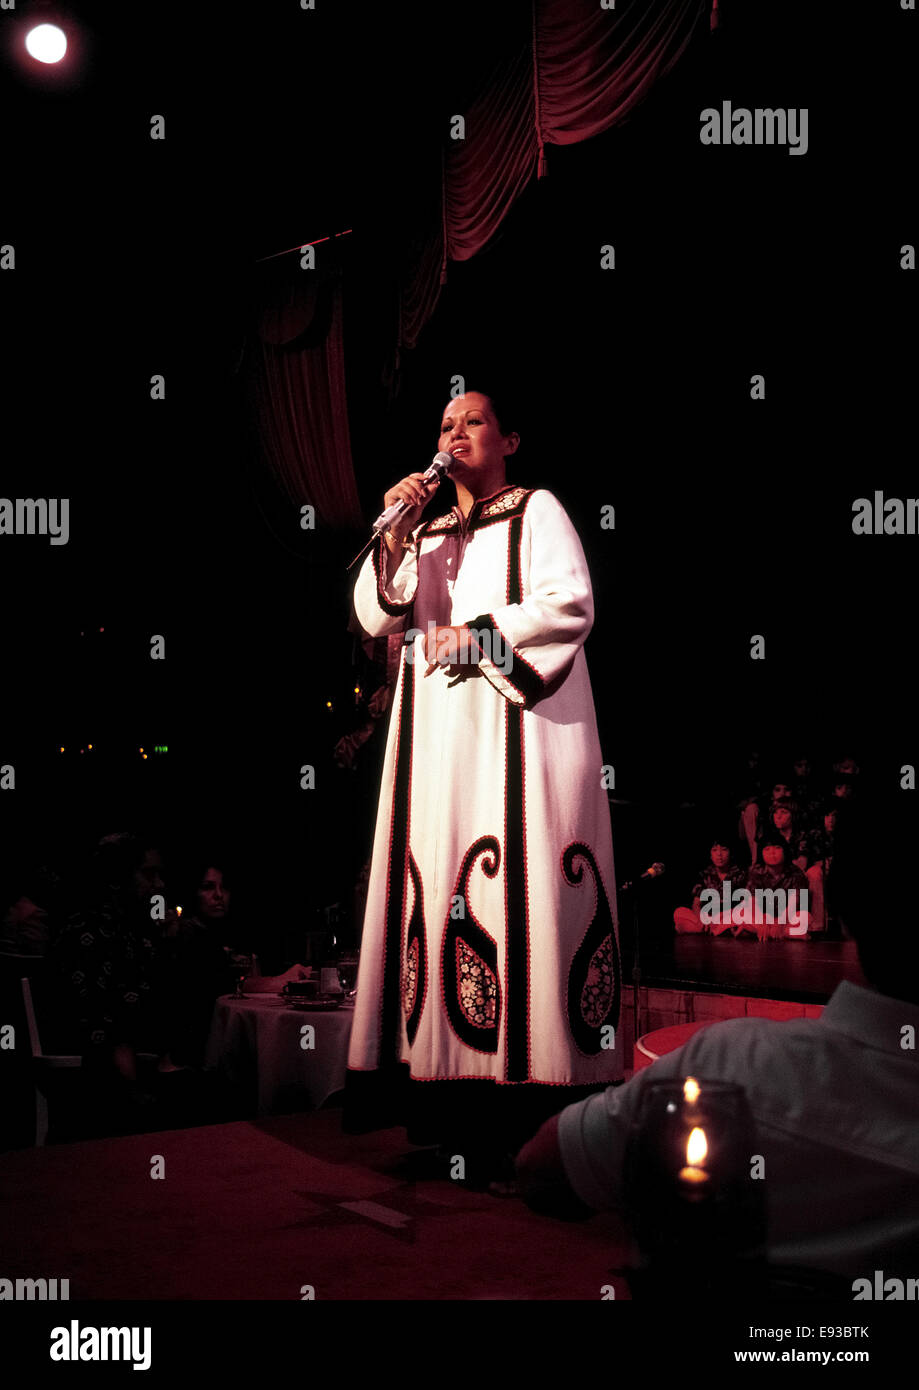 Famed Hawaiian singer Marlene Sai performs her classic island-style songs at a hotel dinner show celebrating Christmas - Stock Image